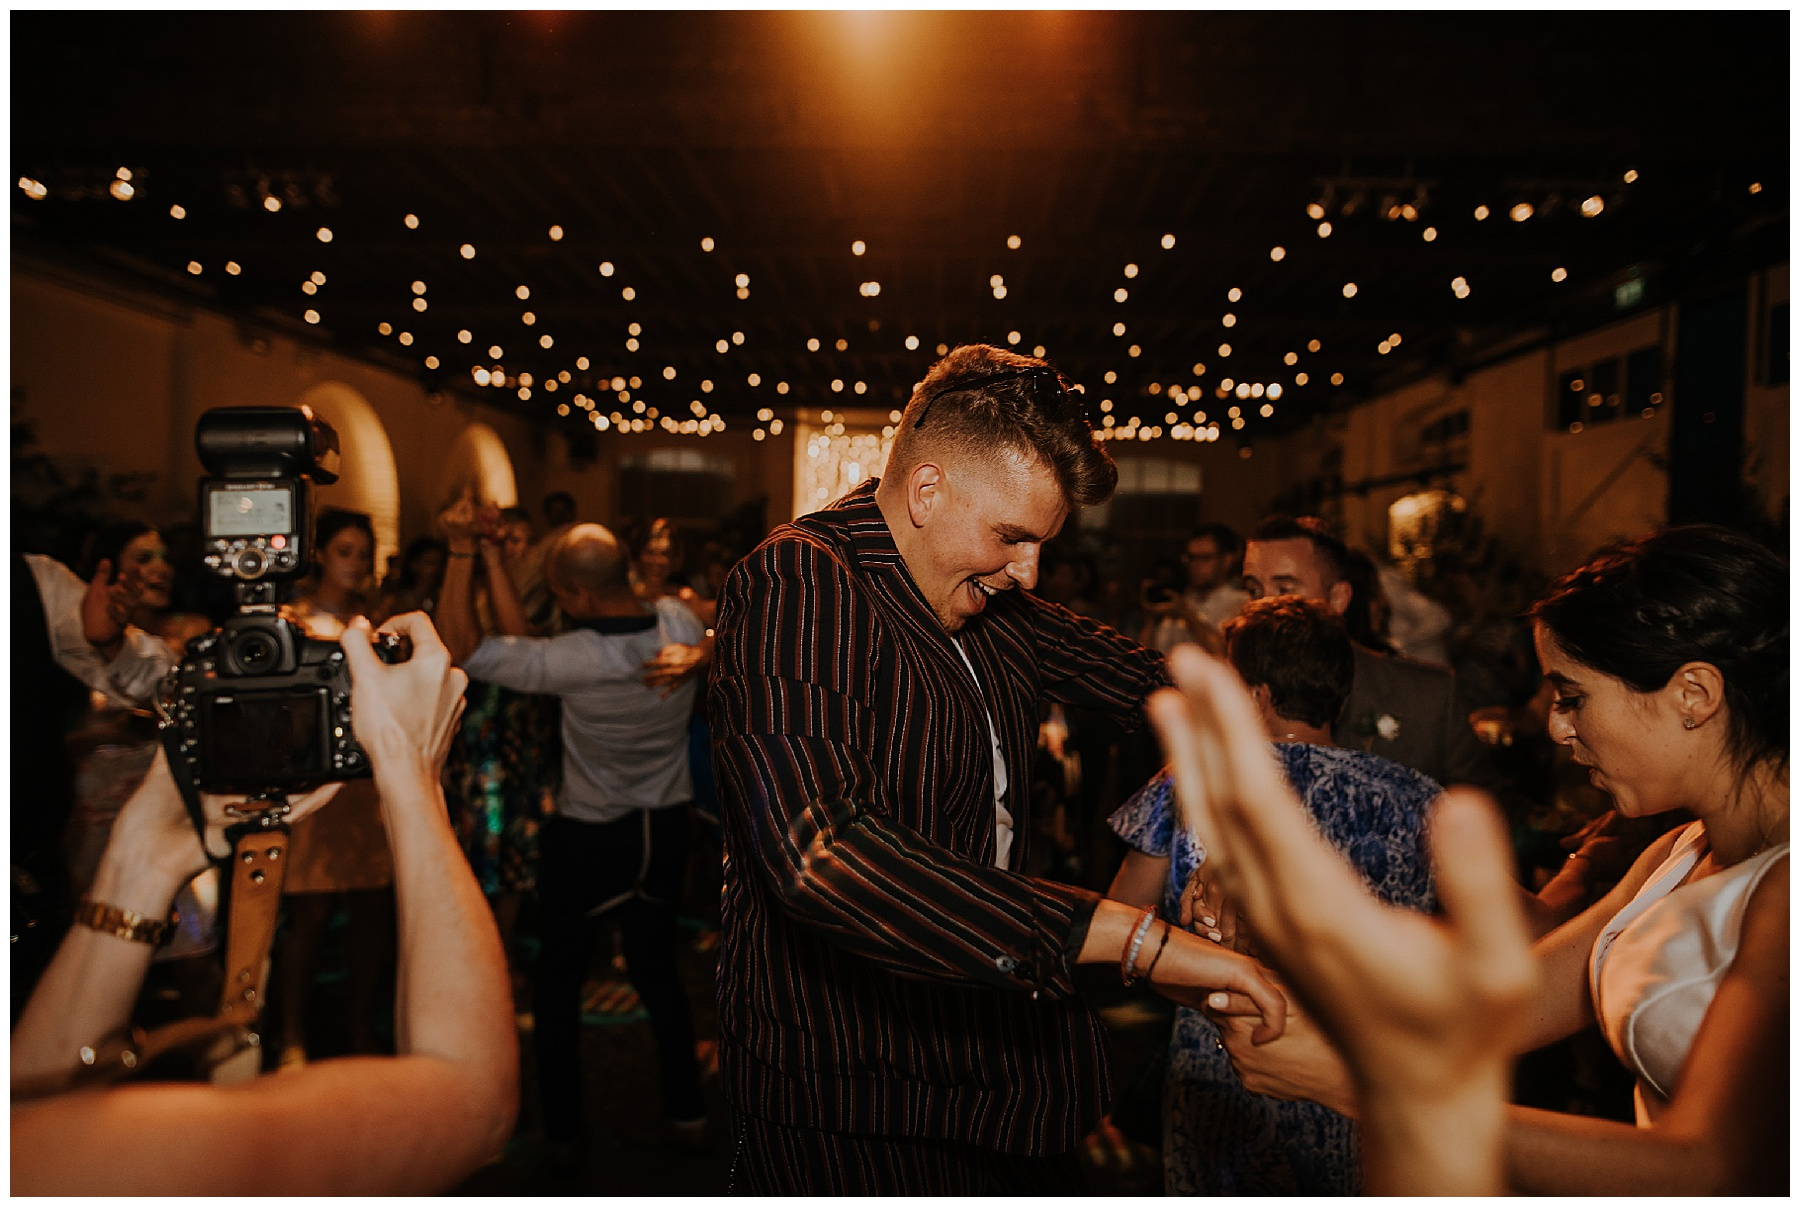 guests at a wedding dance together